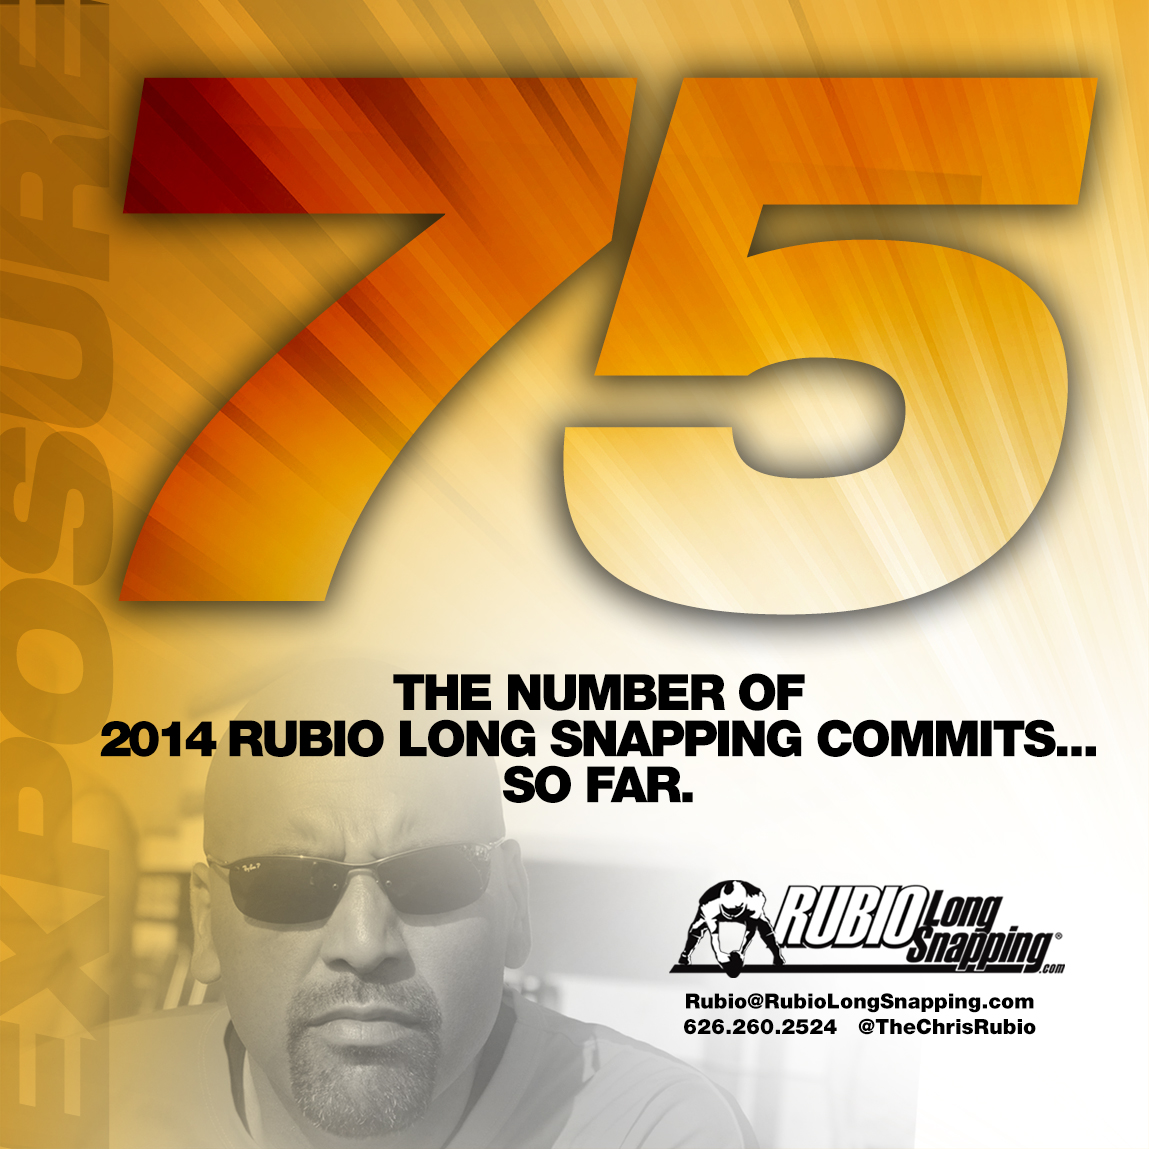 Rubio Long Snapping Commits